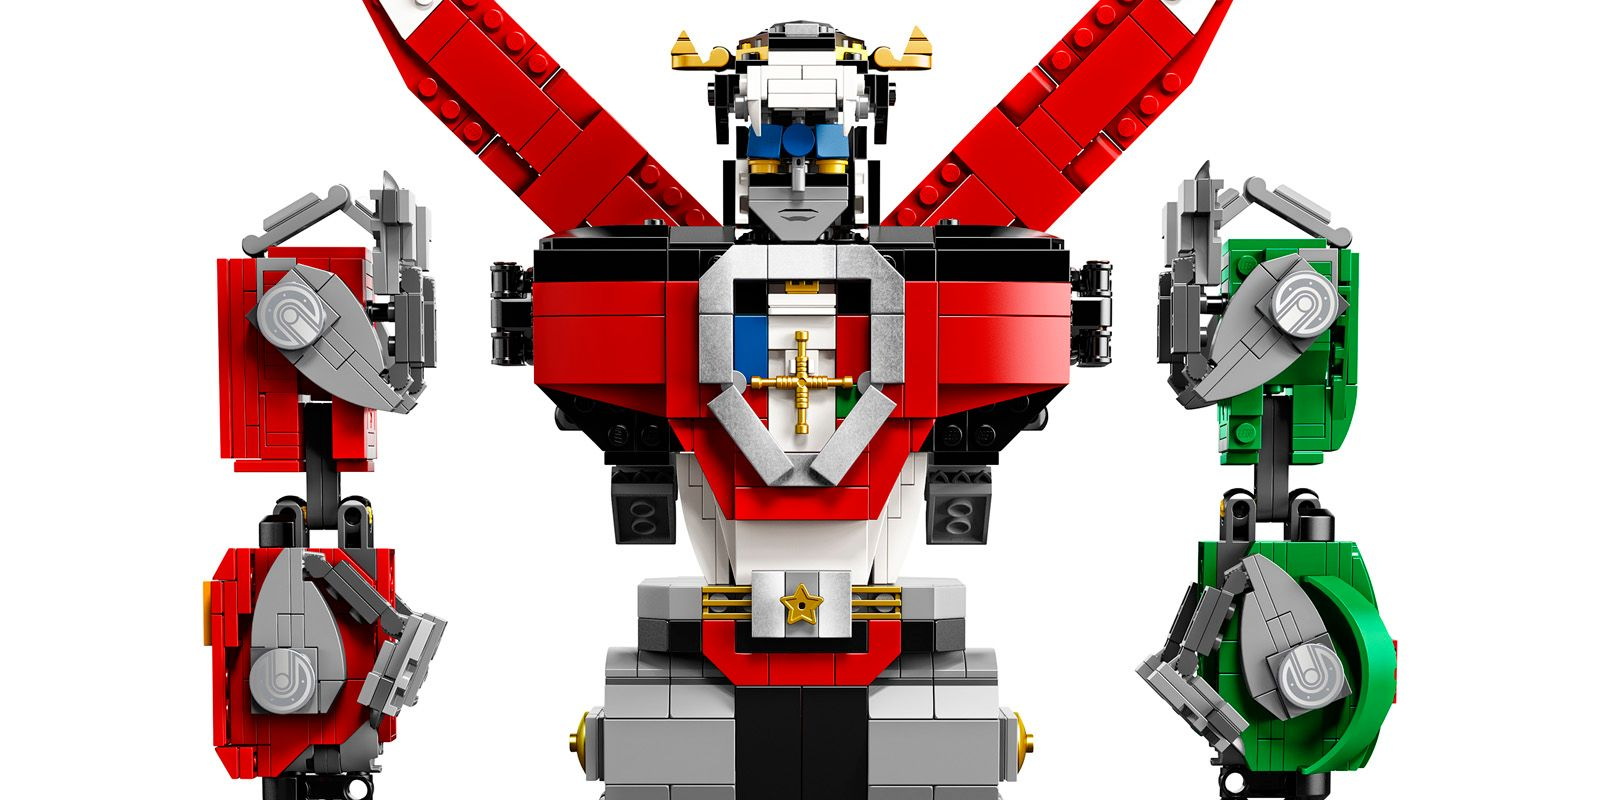 Voltron: Legendary Defender Is The Must-Have LEGO Set Of 2018